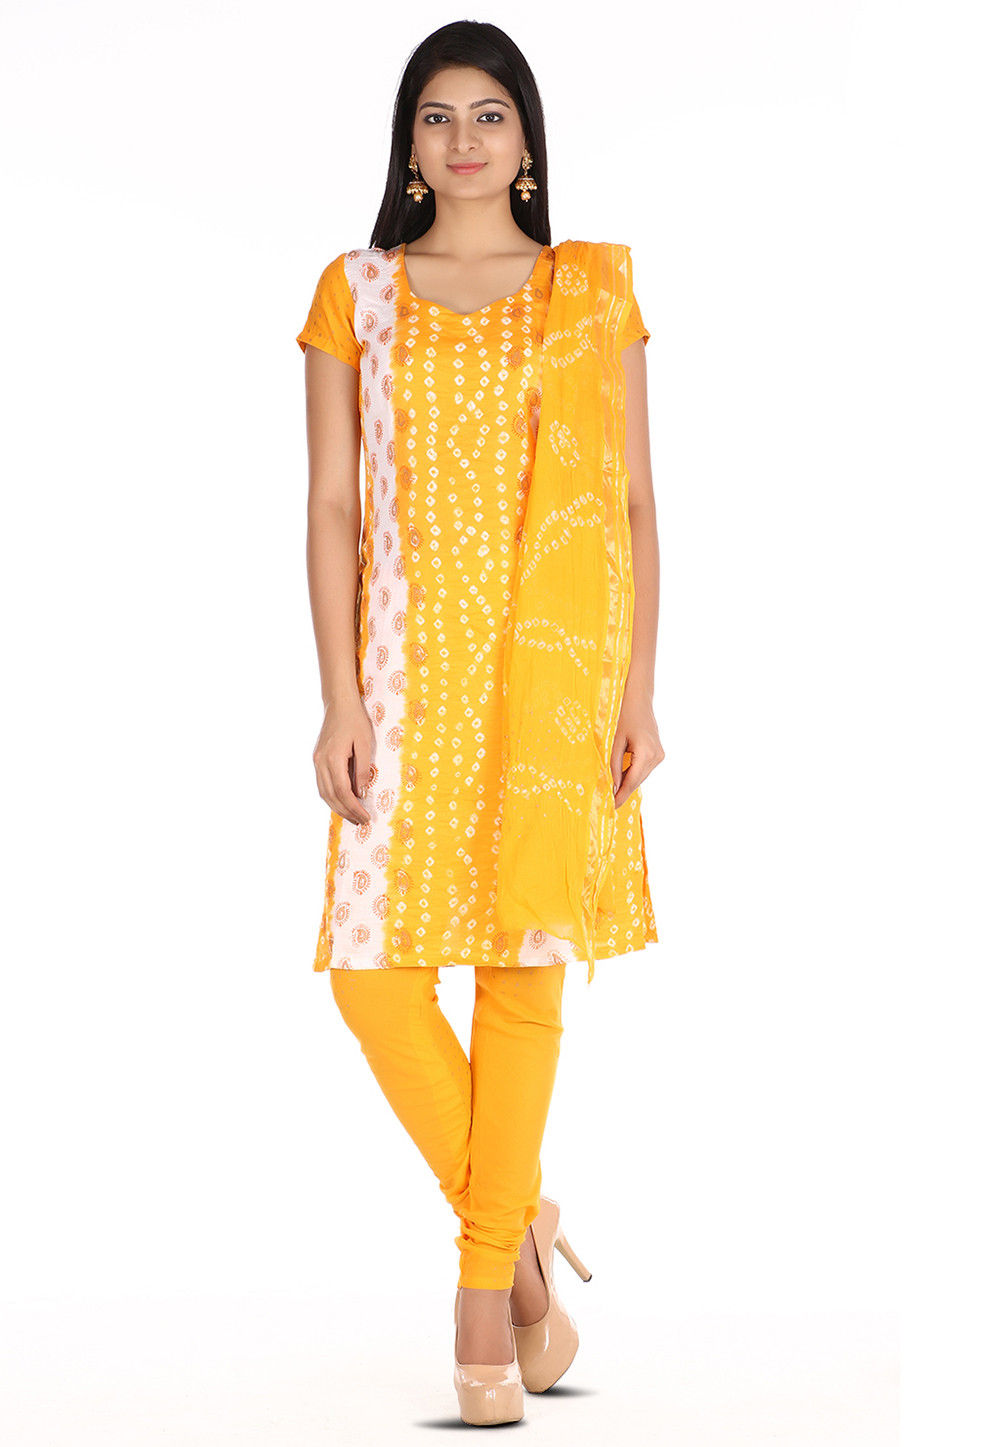 Bandhej Cotton Straight Suit in Mustard